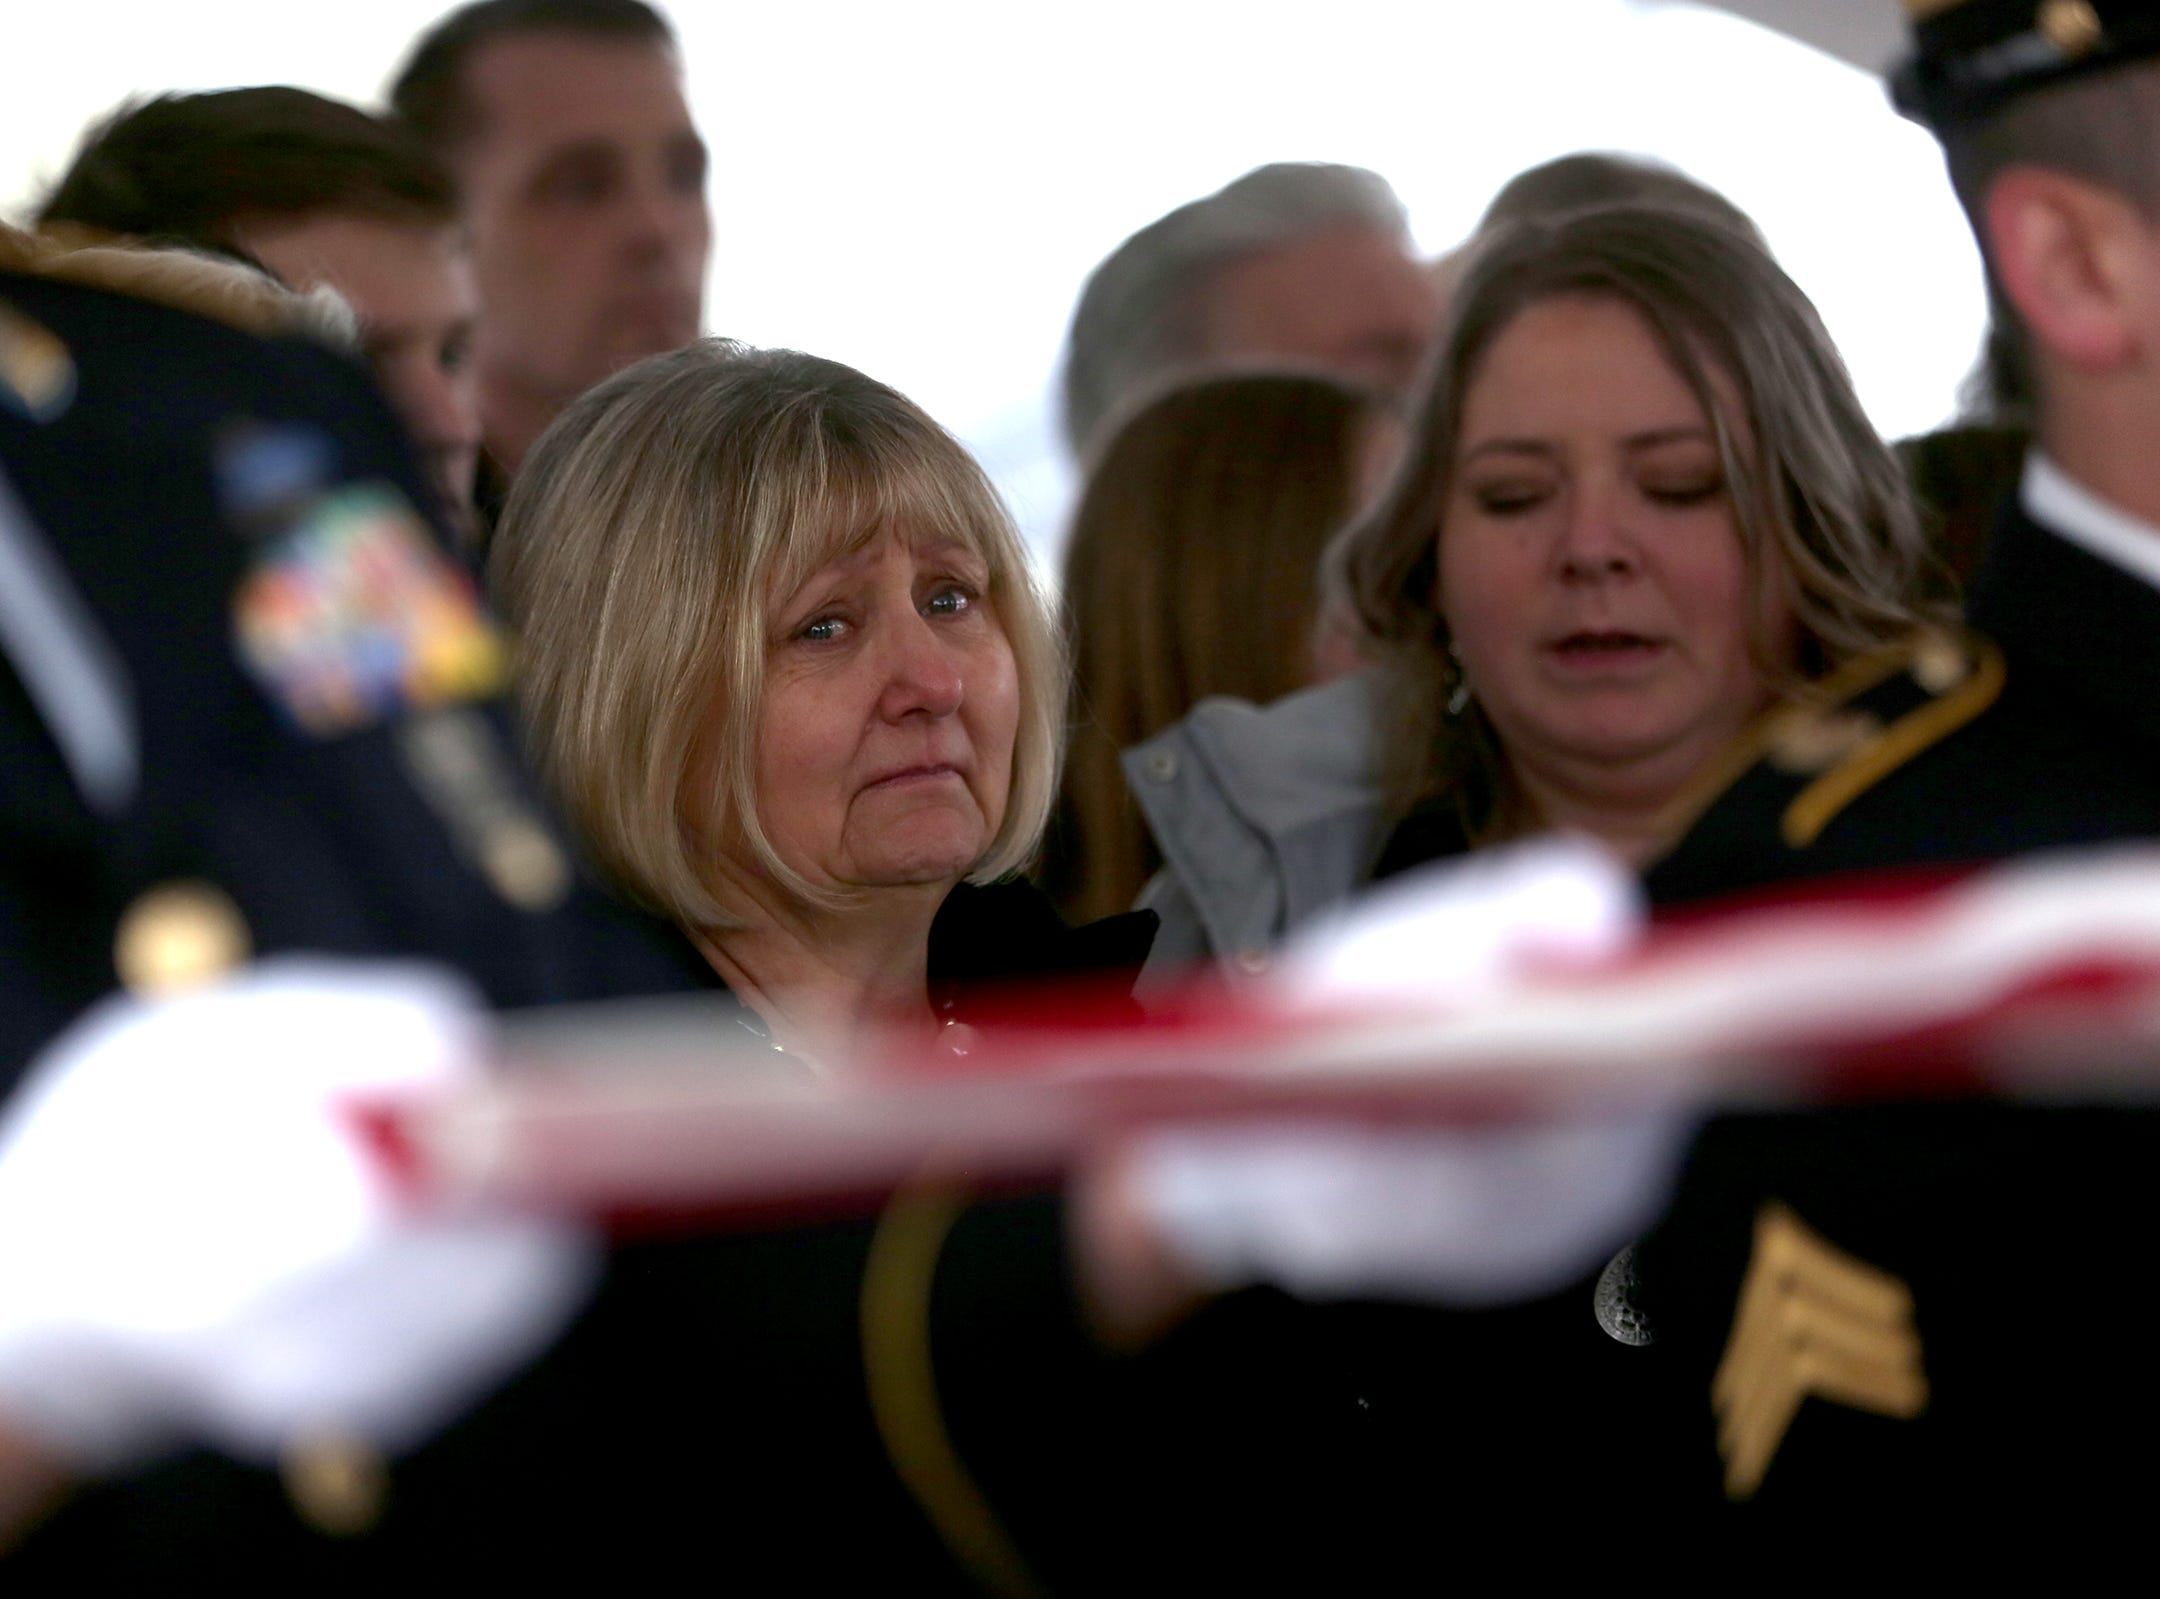 Cathy Richardson watches as military members fold the flag during the state funeral for Secretary of State Dennis Richardson at the Oregon State Capitol in Salem on Wednesday, March 6, 2019.